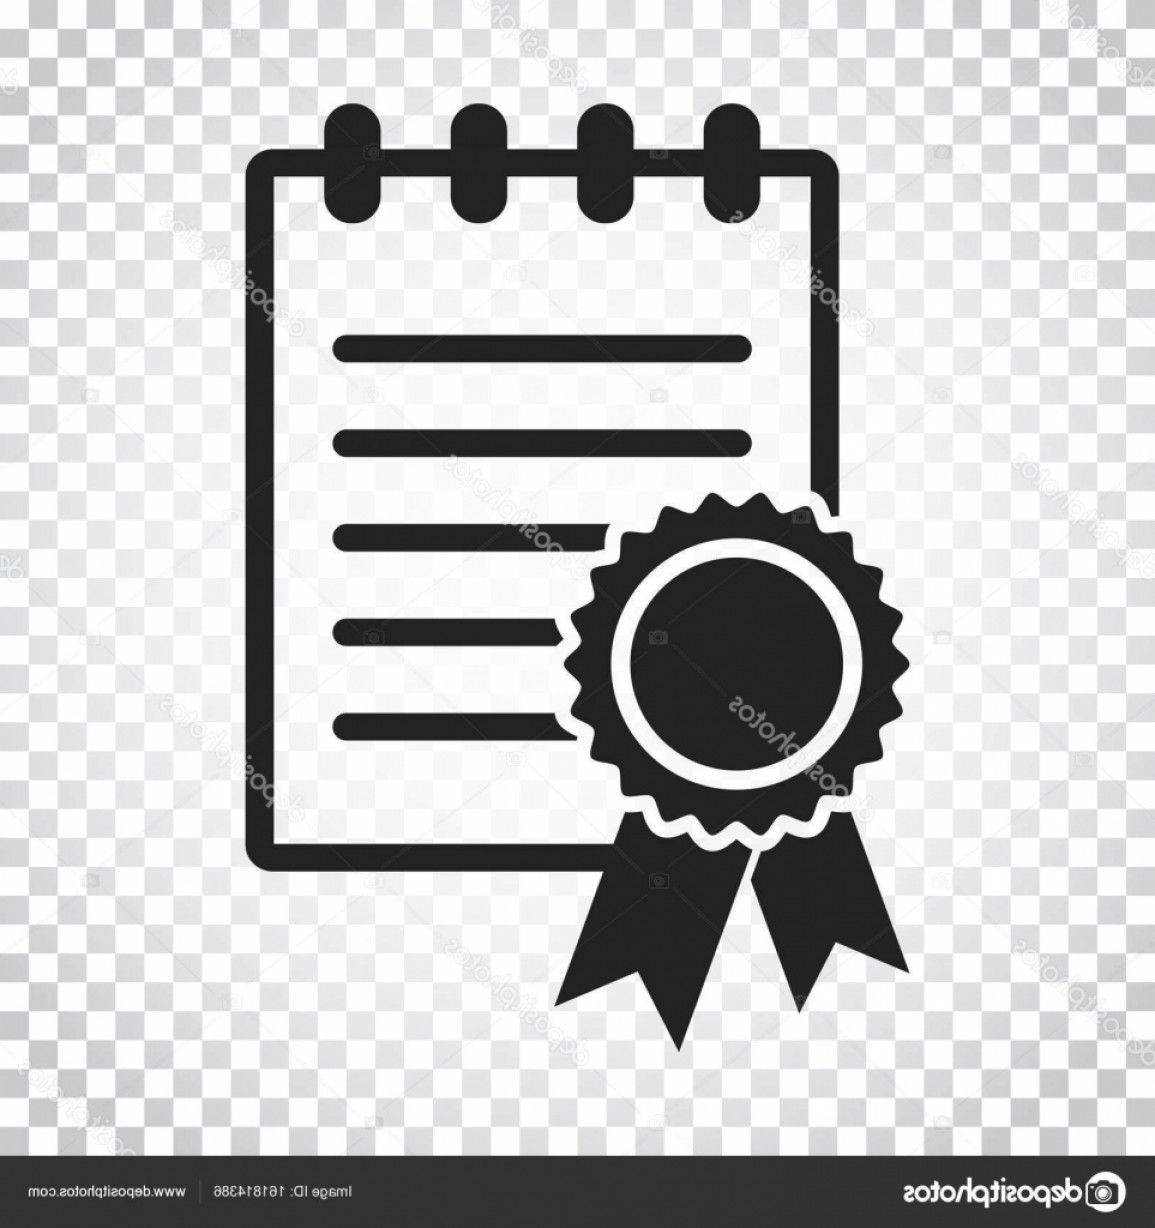 Diploma Icon Vector: Stock Illustration Certificate Icon Diploma Symbol Flat